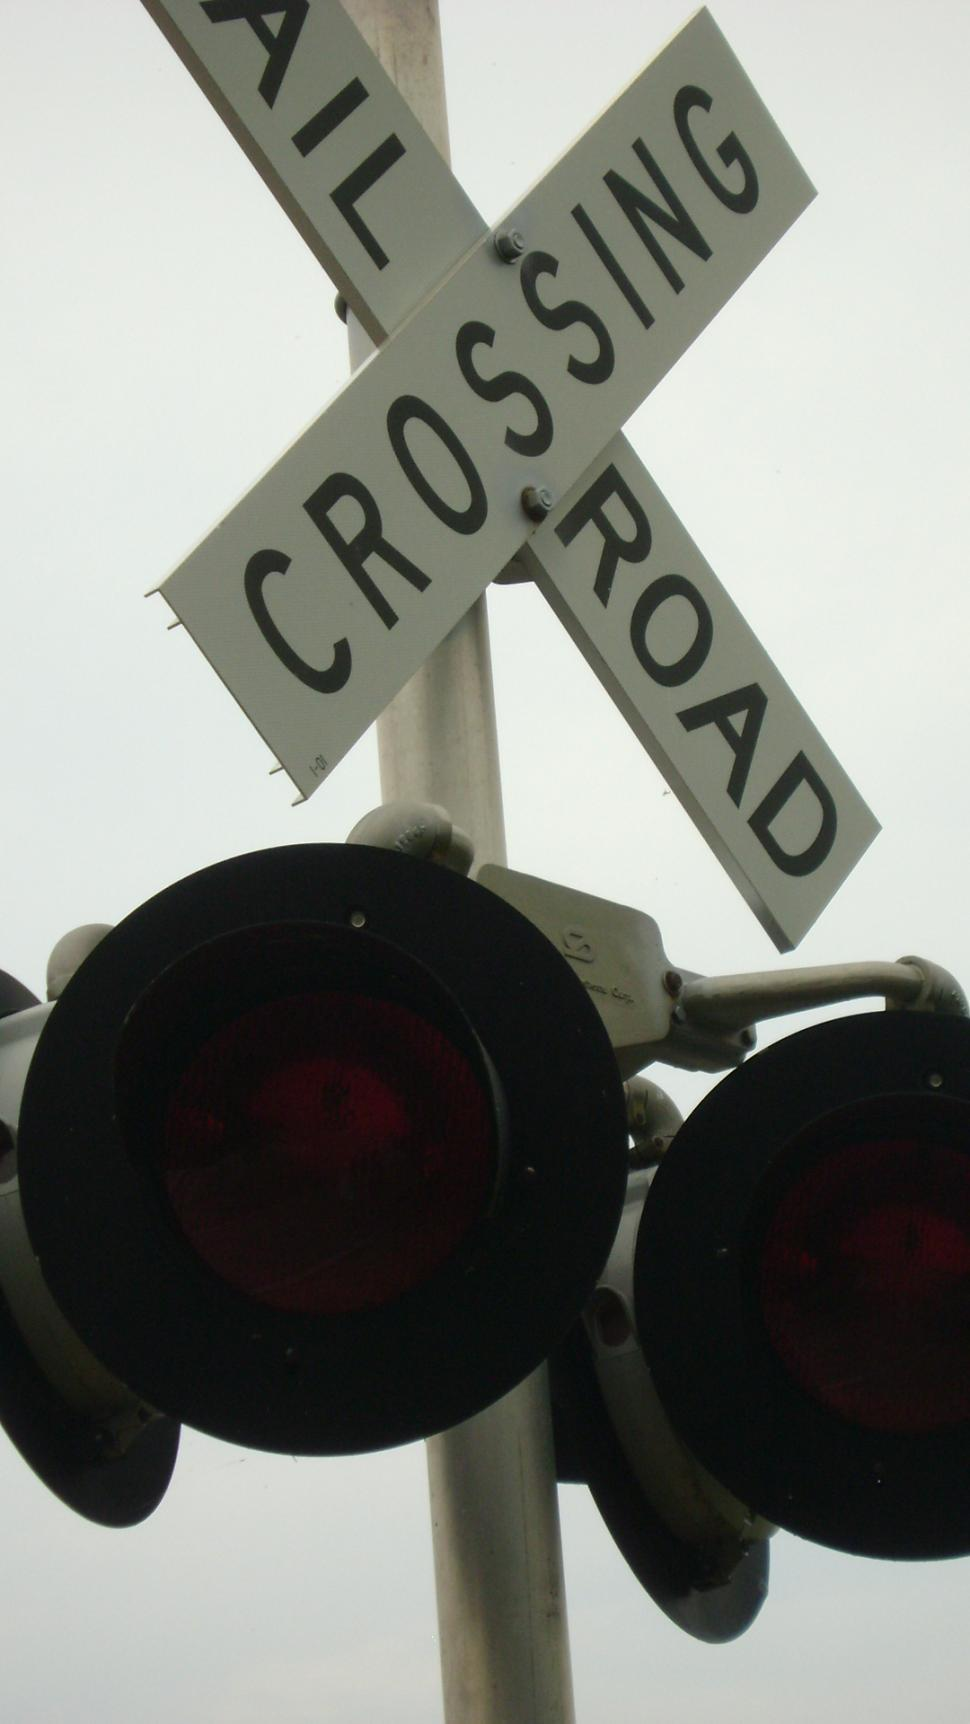 Download Free Stock HD Photo of Train and crossing Online